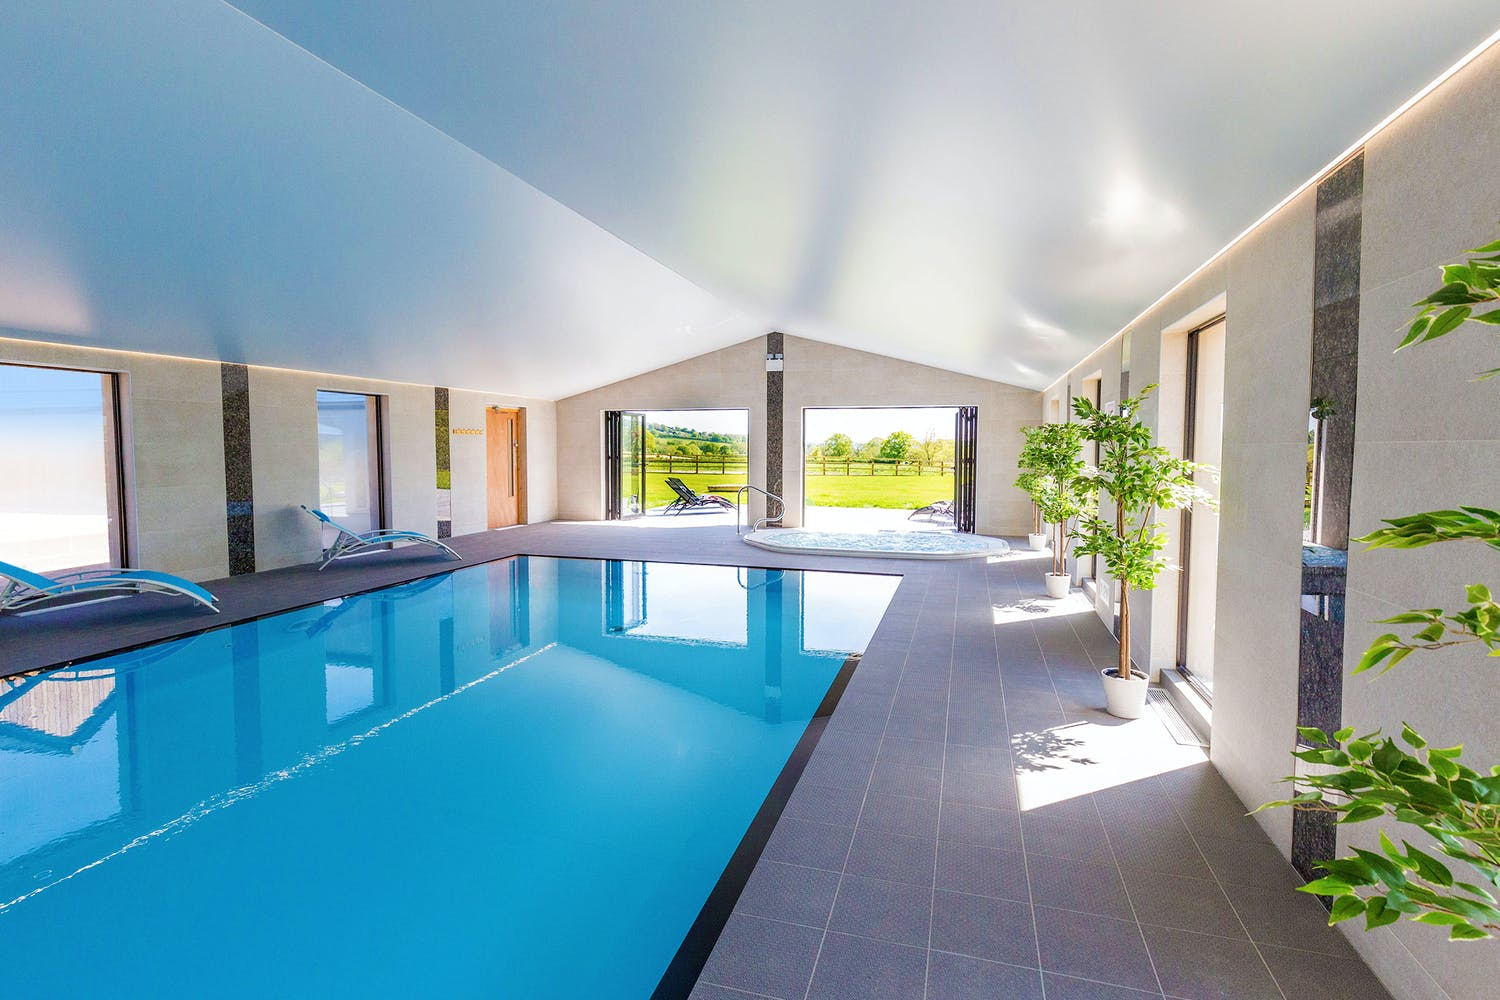 Cool Holiday Cottages In Devon With A Swimming Pool Holiday Download Free Architecture Designs Embacsunscenecom